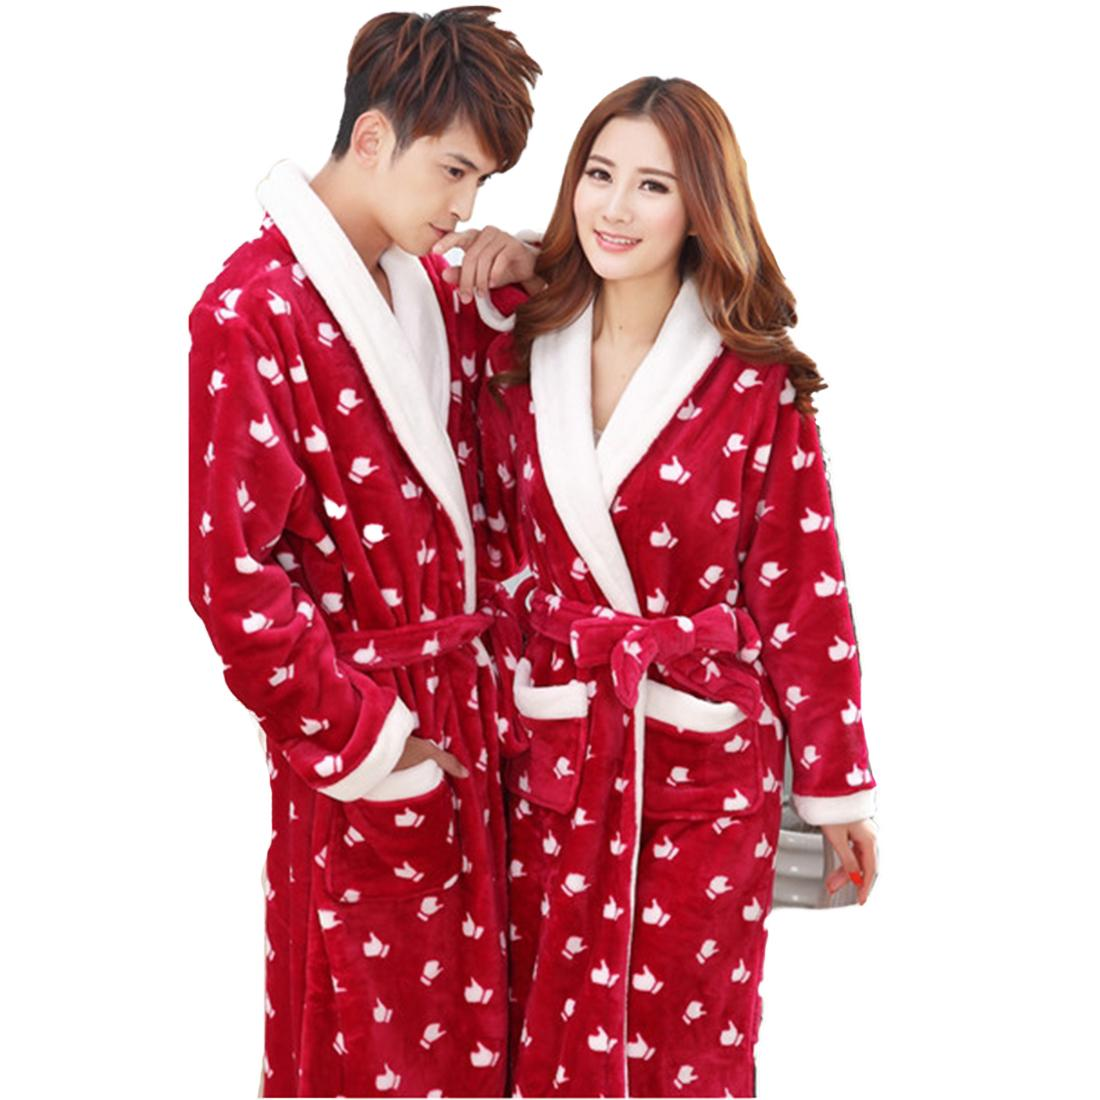 b47bbcdf27 2019 Wholesale 2XL Knee Length Flannel Bathrobe Women Winter Leopard Robes  Men Thicken Warm Sleepwear Homewear Belted Coral Bath Robe Pockets From  Oott